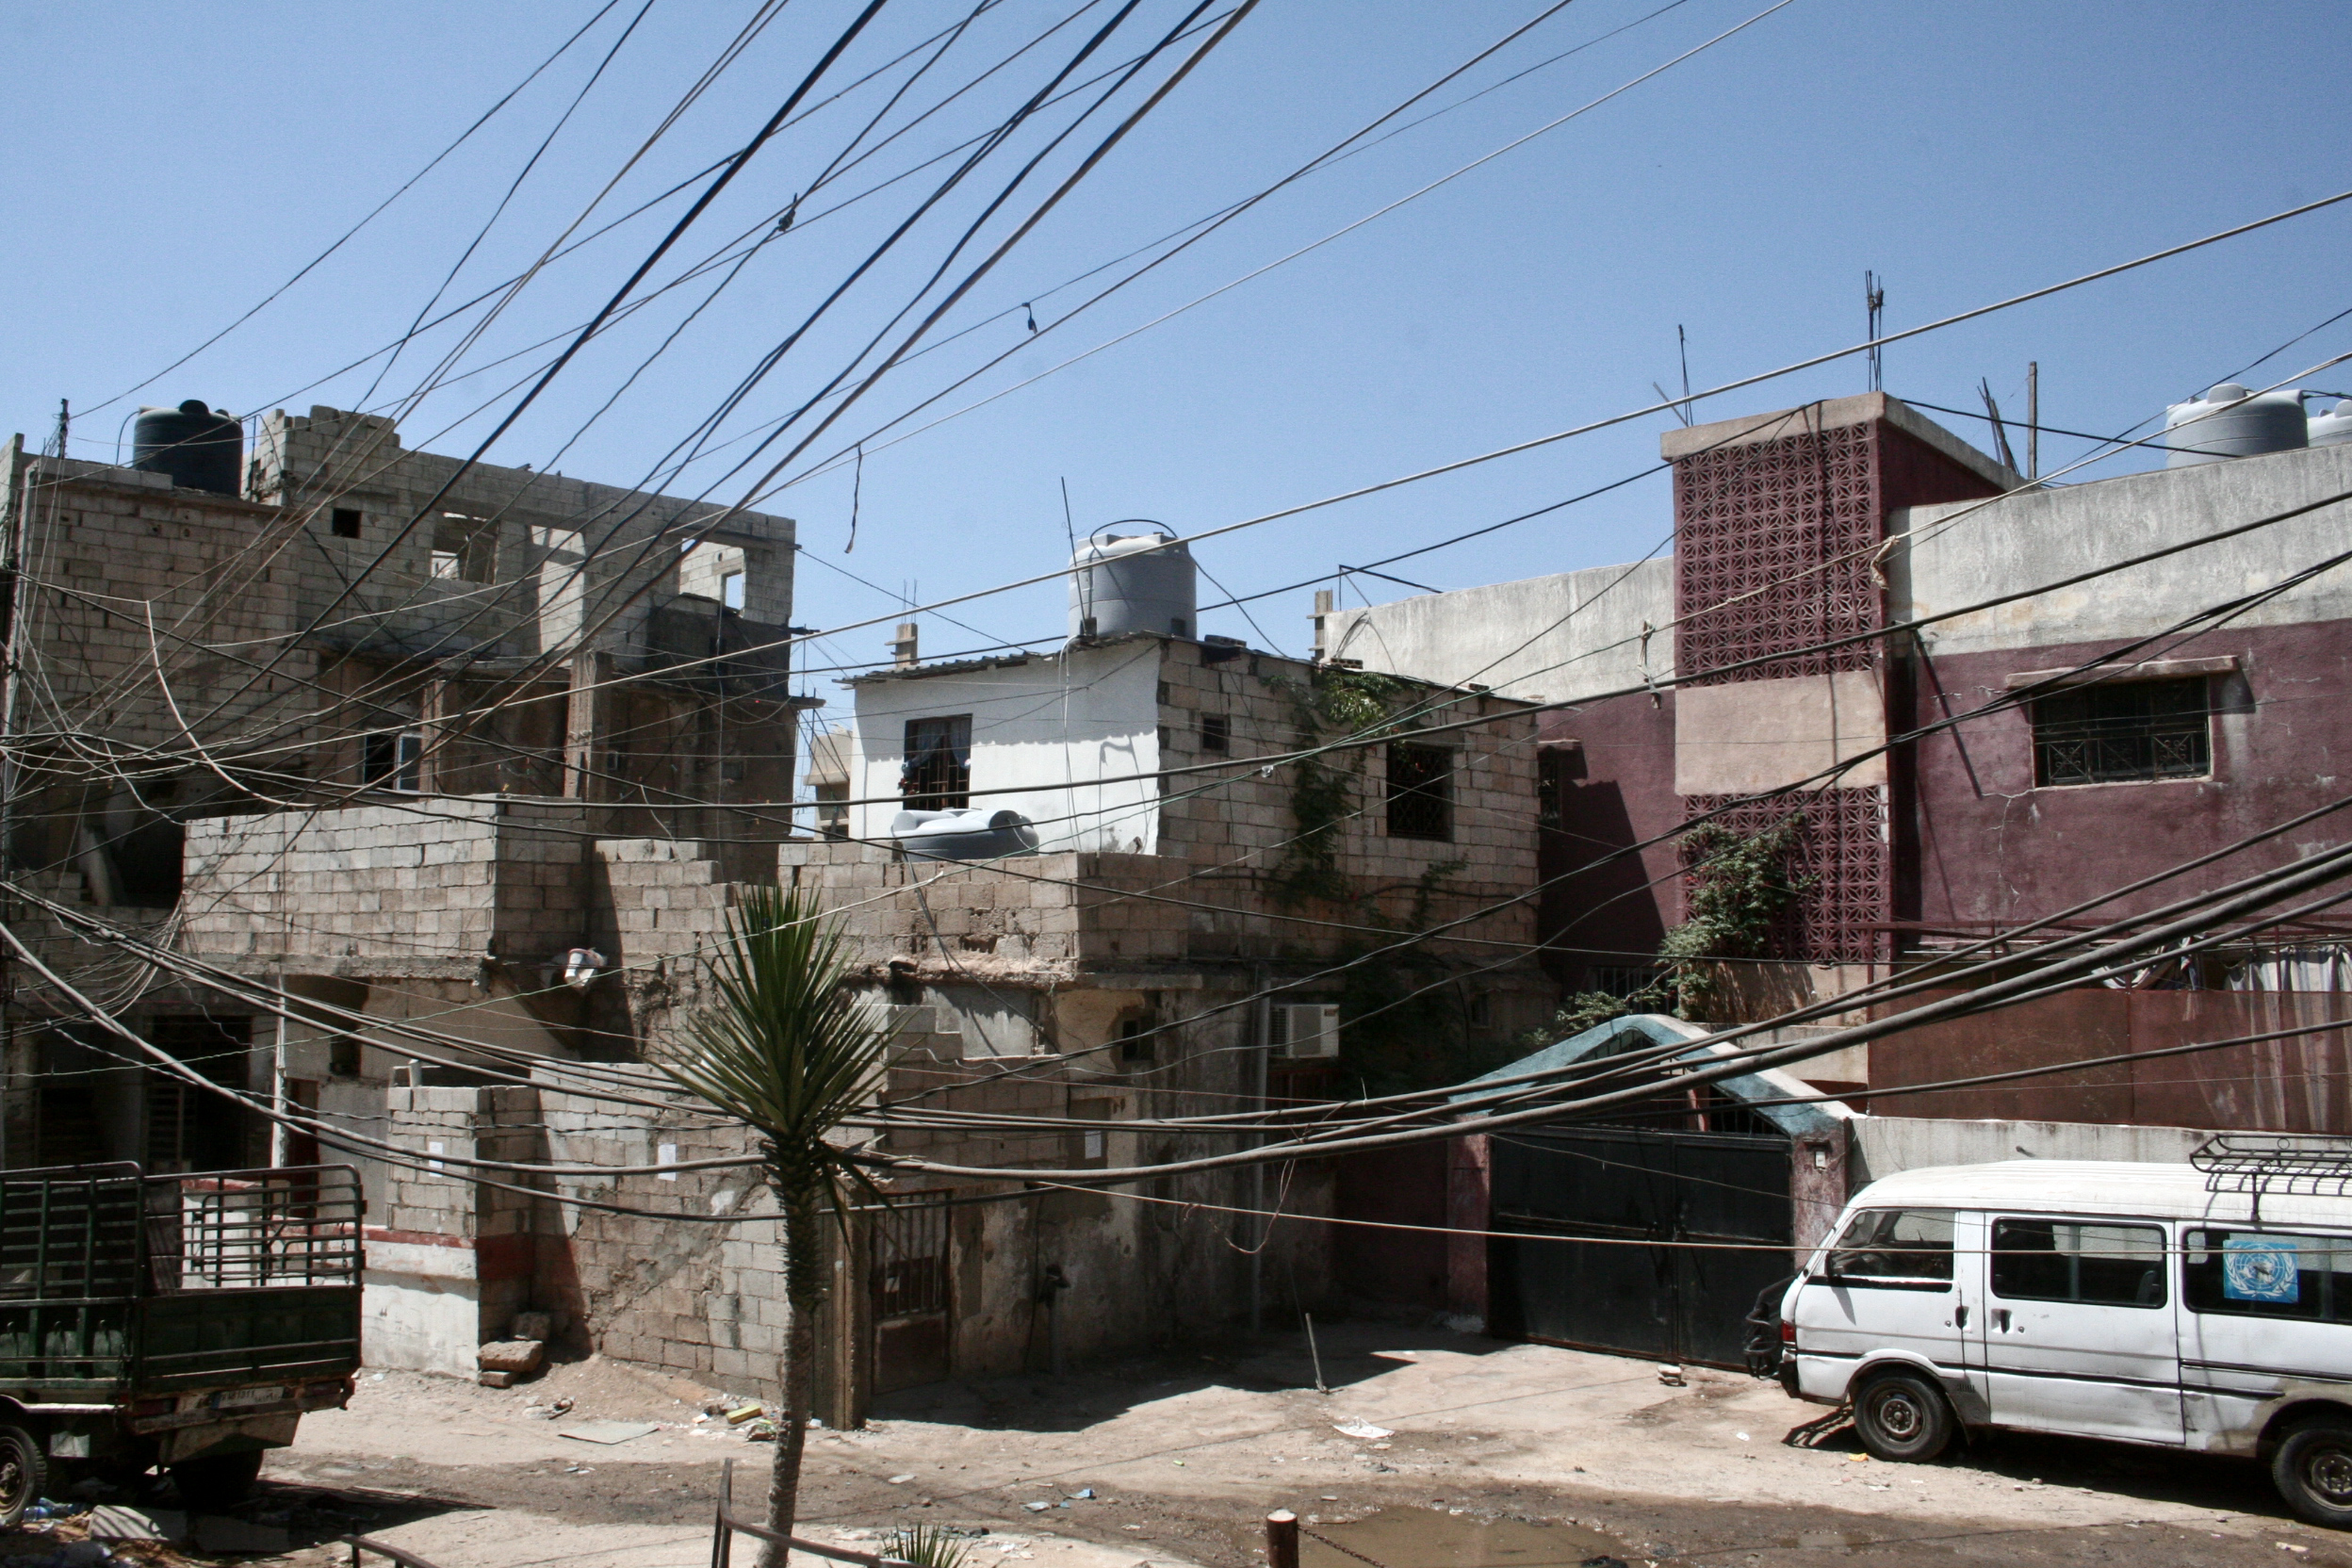 Bourj al-Barajneh is overcrowded and residents complain about the dangerous electricity cables that hang low (Magne Hagesæter/Flickr)